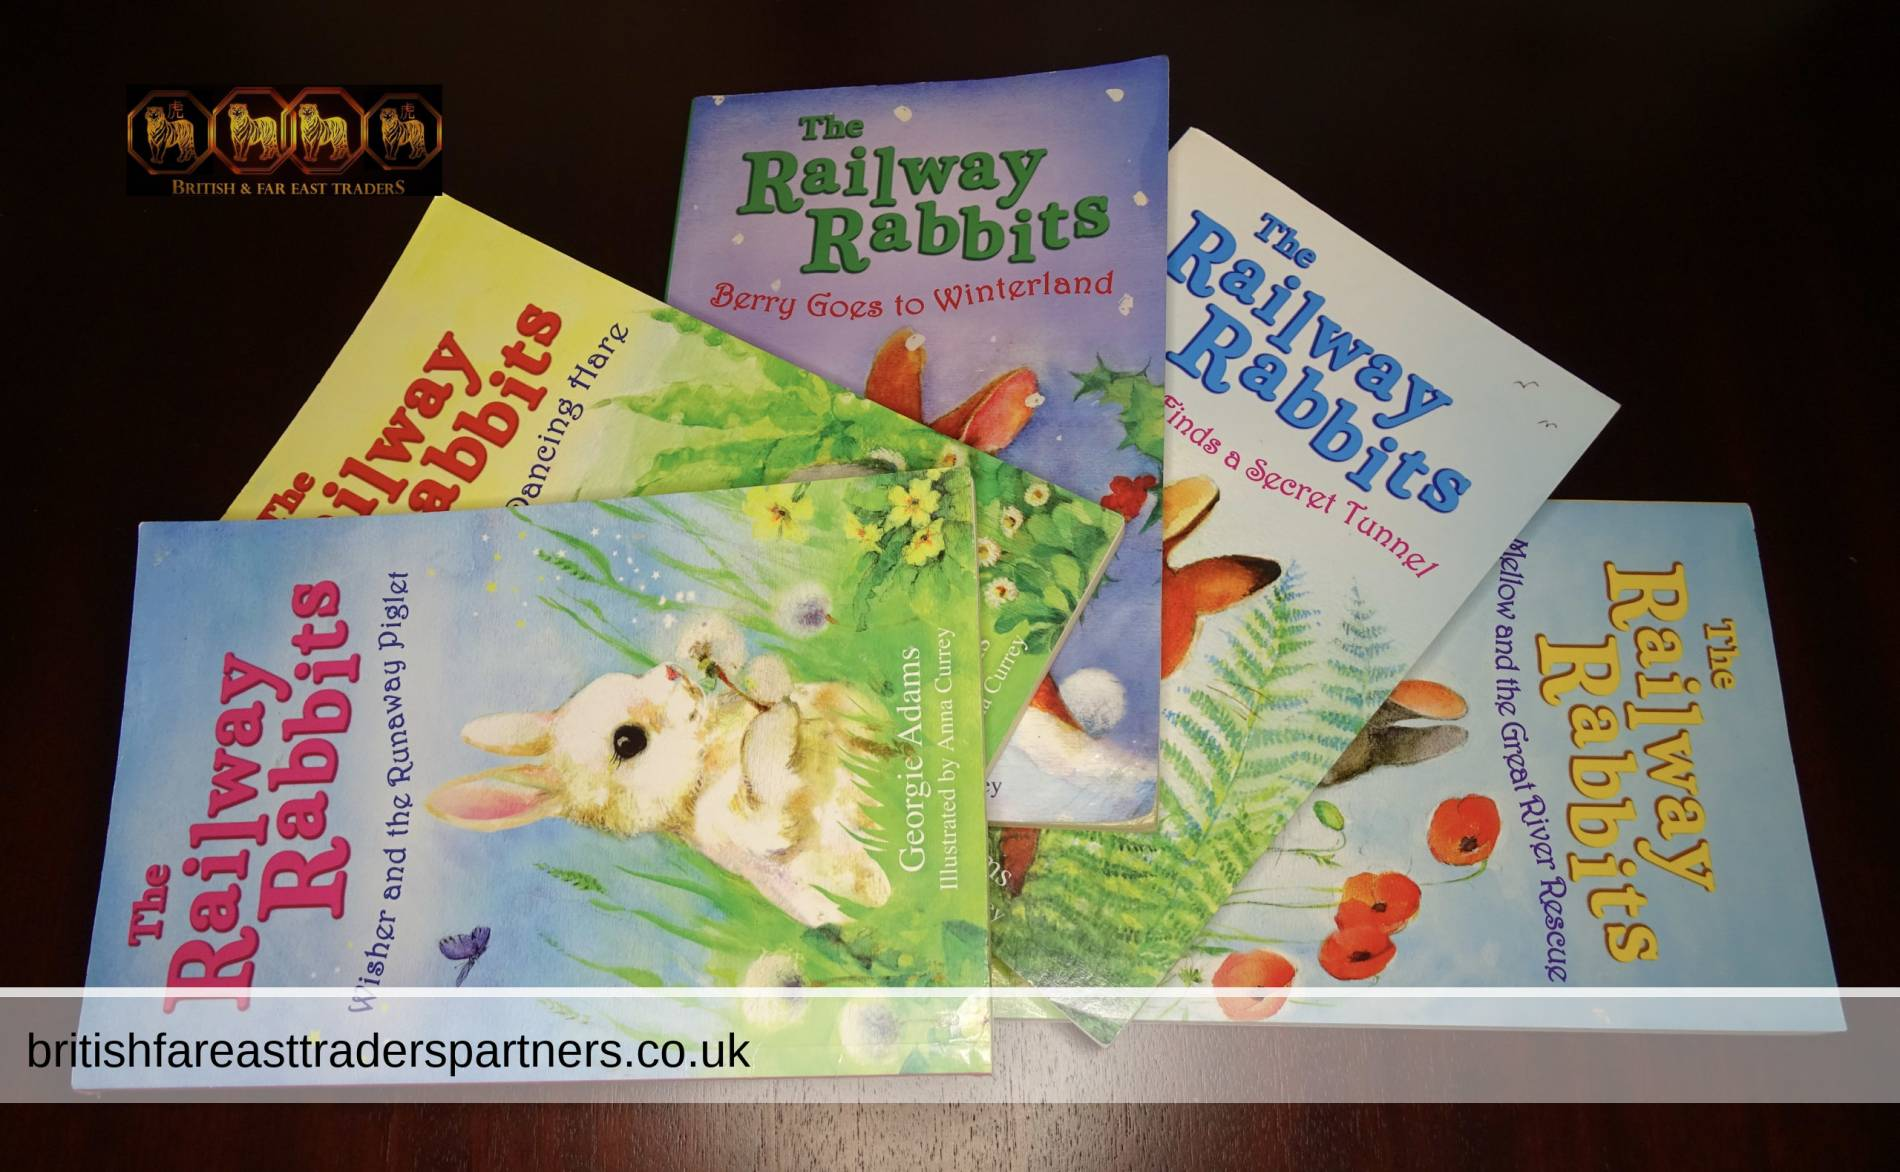 Kids / Children's 5 Illustrated Story Books The Railway Rabbits By Georgie Adams Illustrated by Anna Currey Paperback Bundle GC